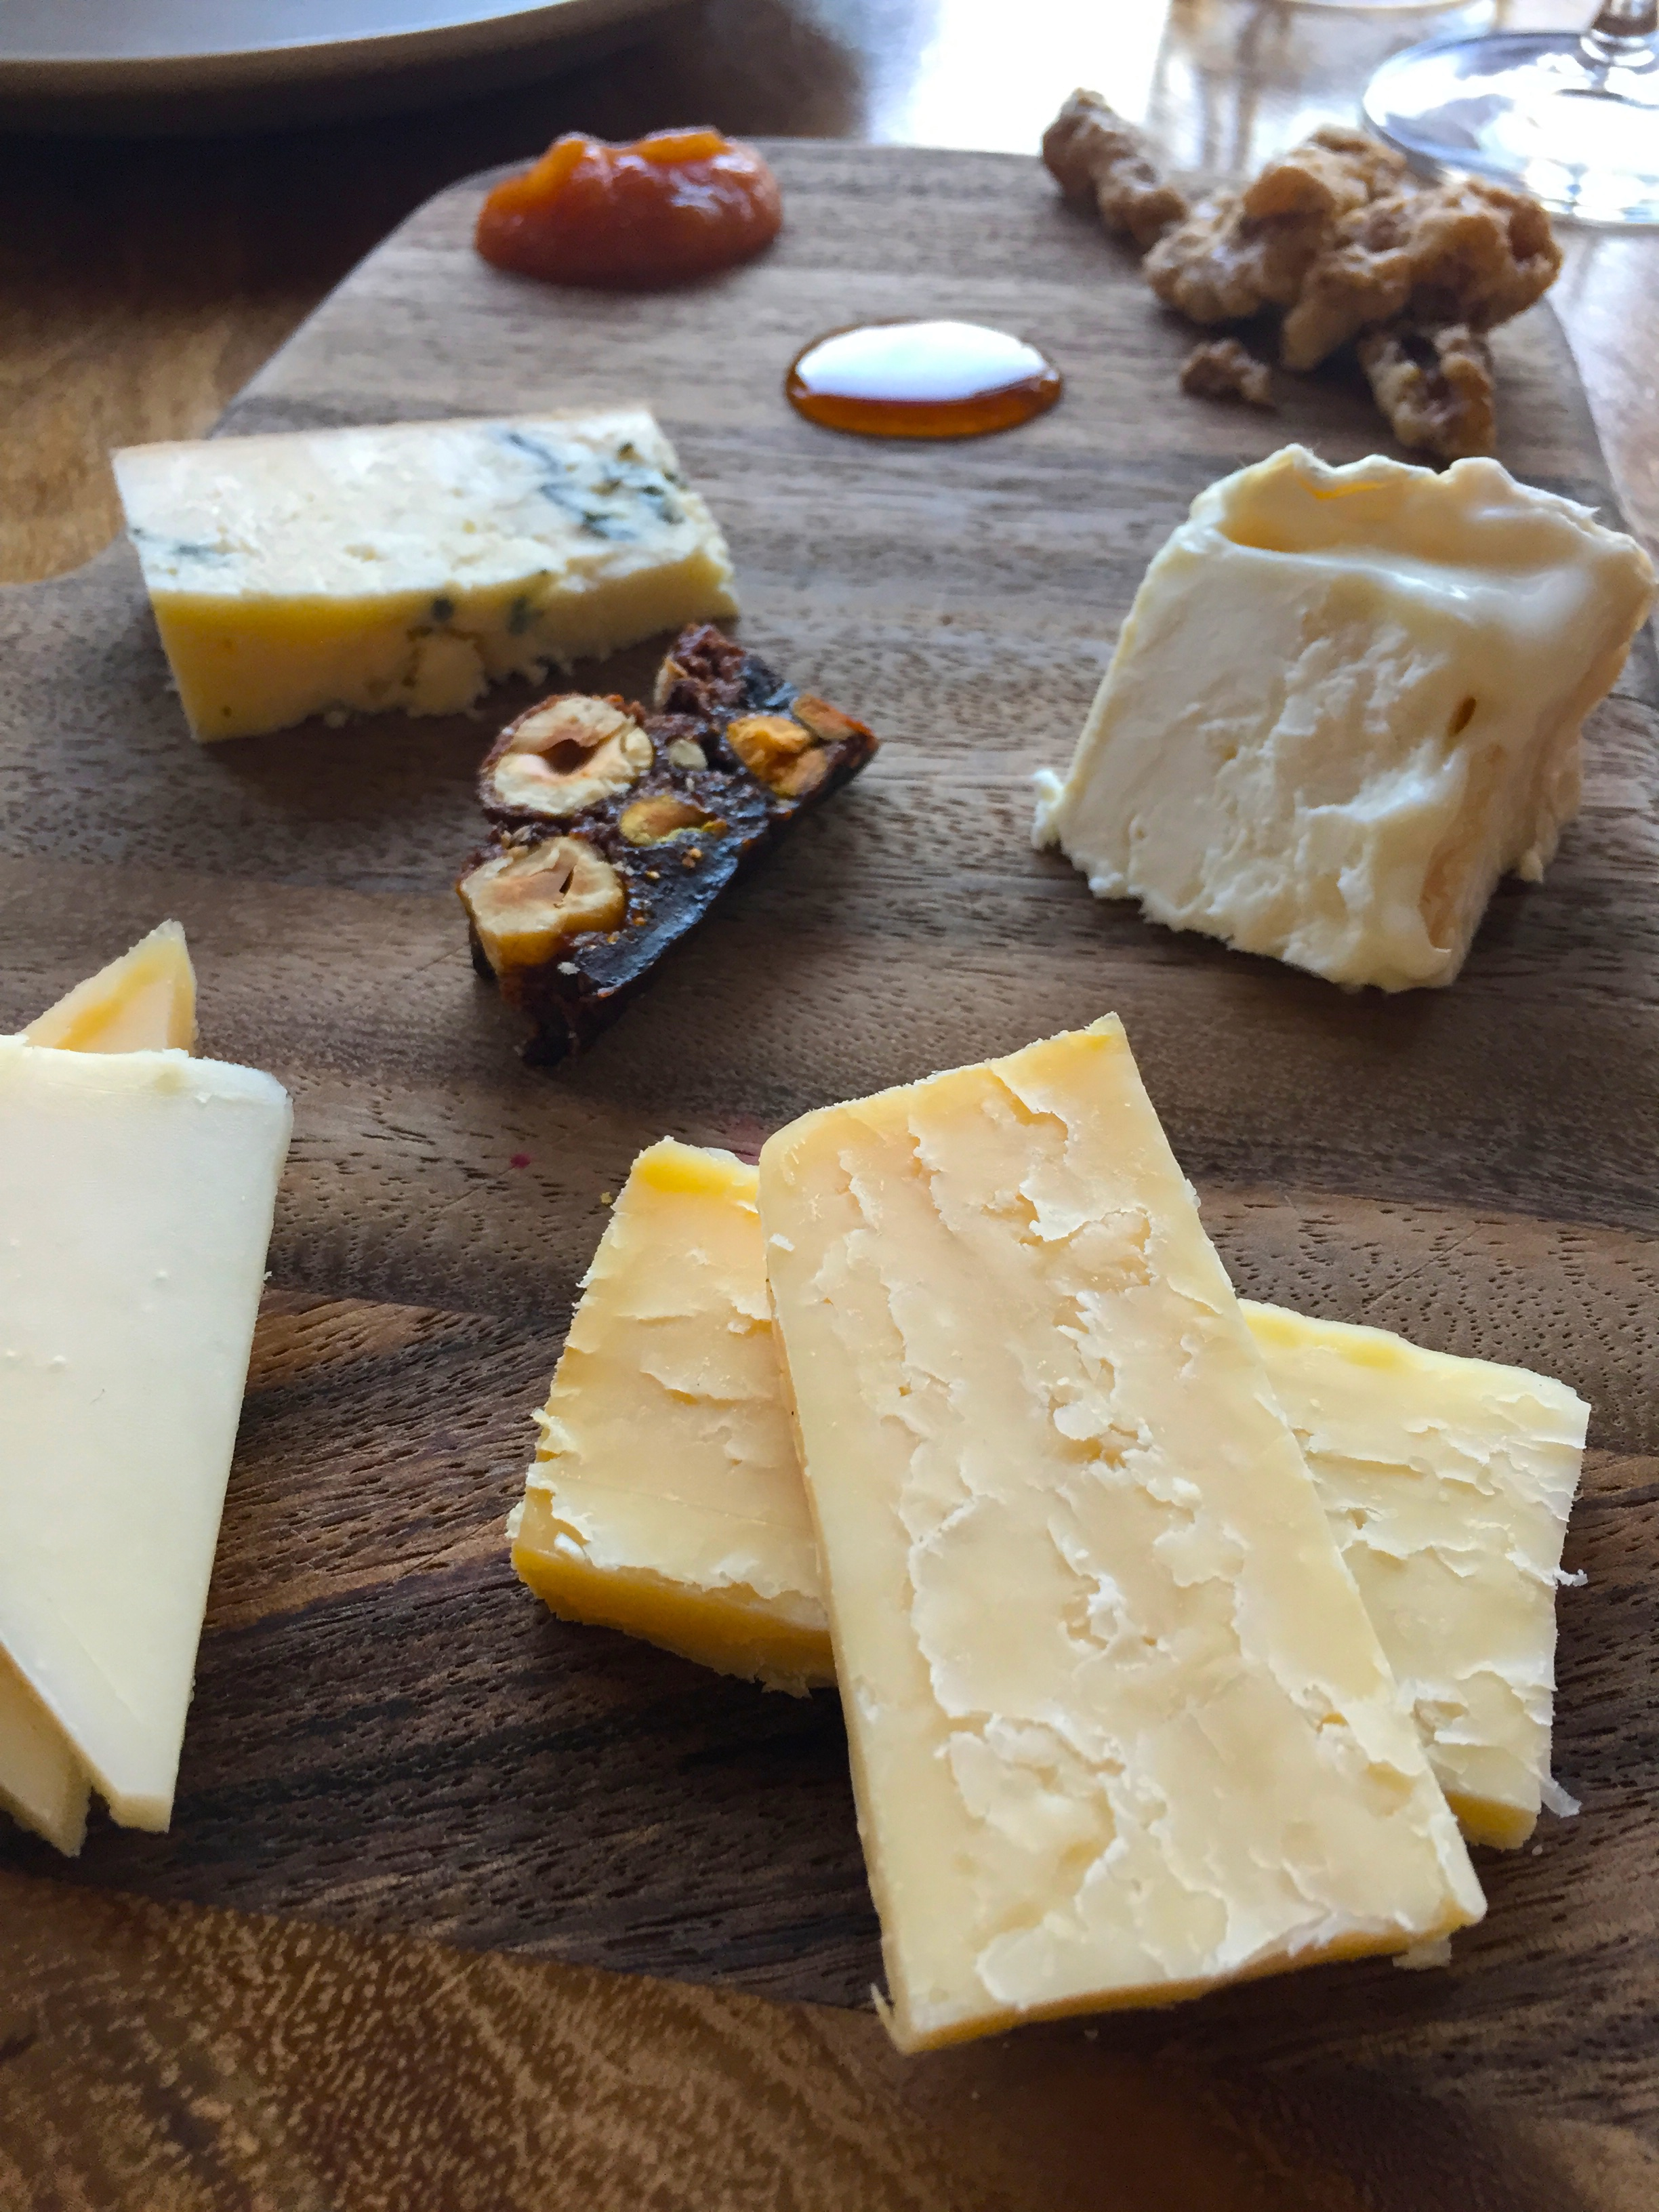 Cheese board selection.